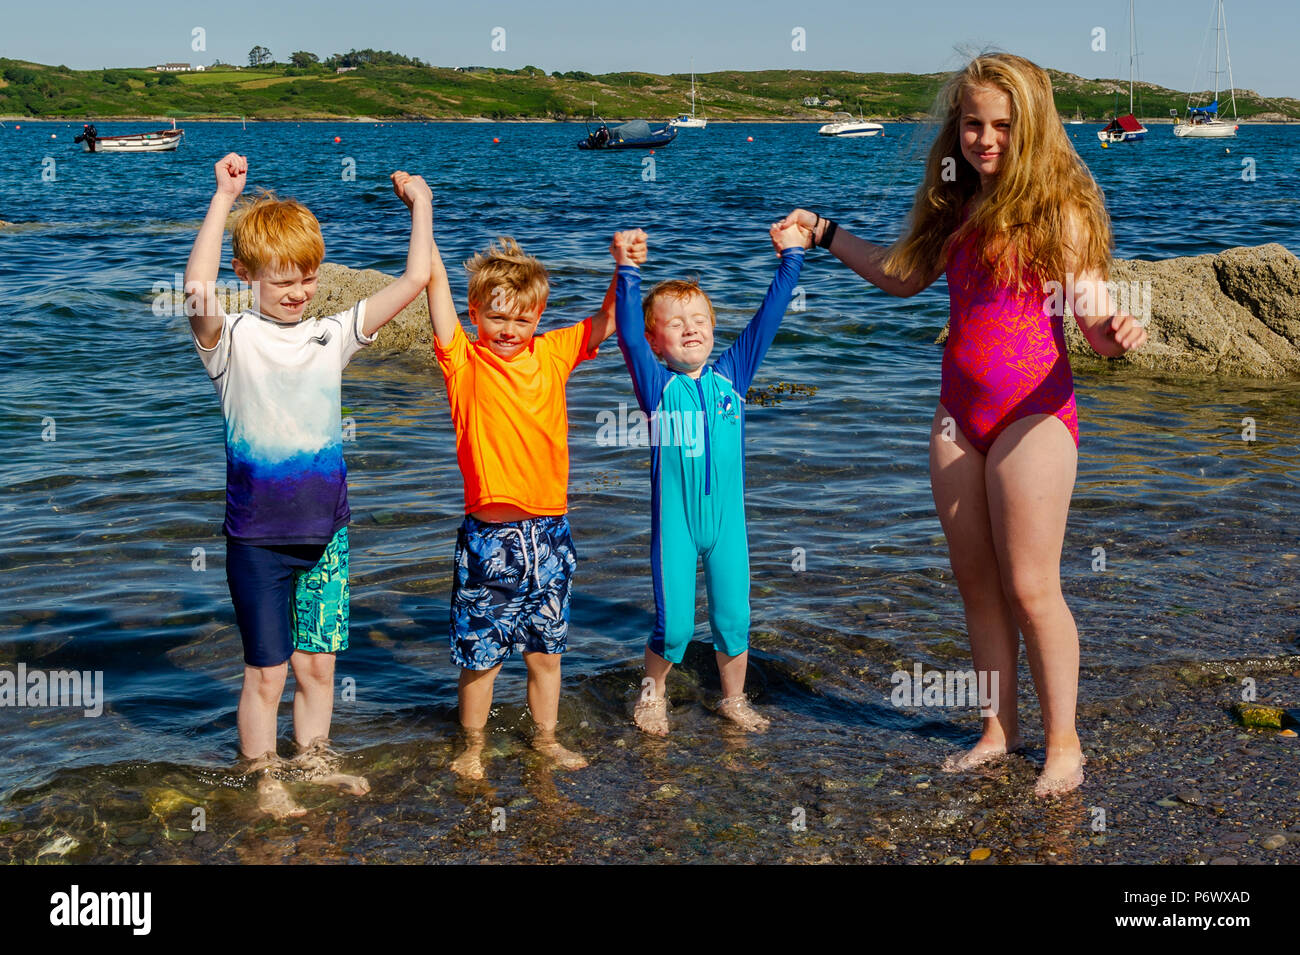 Schull, West Cork, Ireland. 3rd July, 2018. Daniel, Toby, Sam and Eve Enright from Dublin cool off in the sea on another blisteringly hot day. The heatwave shows no sign of ending with temperatures forecast to be in the high 20°'s Celsius for at least a week. Credit: Andy Gibson/Alamy Live News. - Stock Image